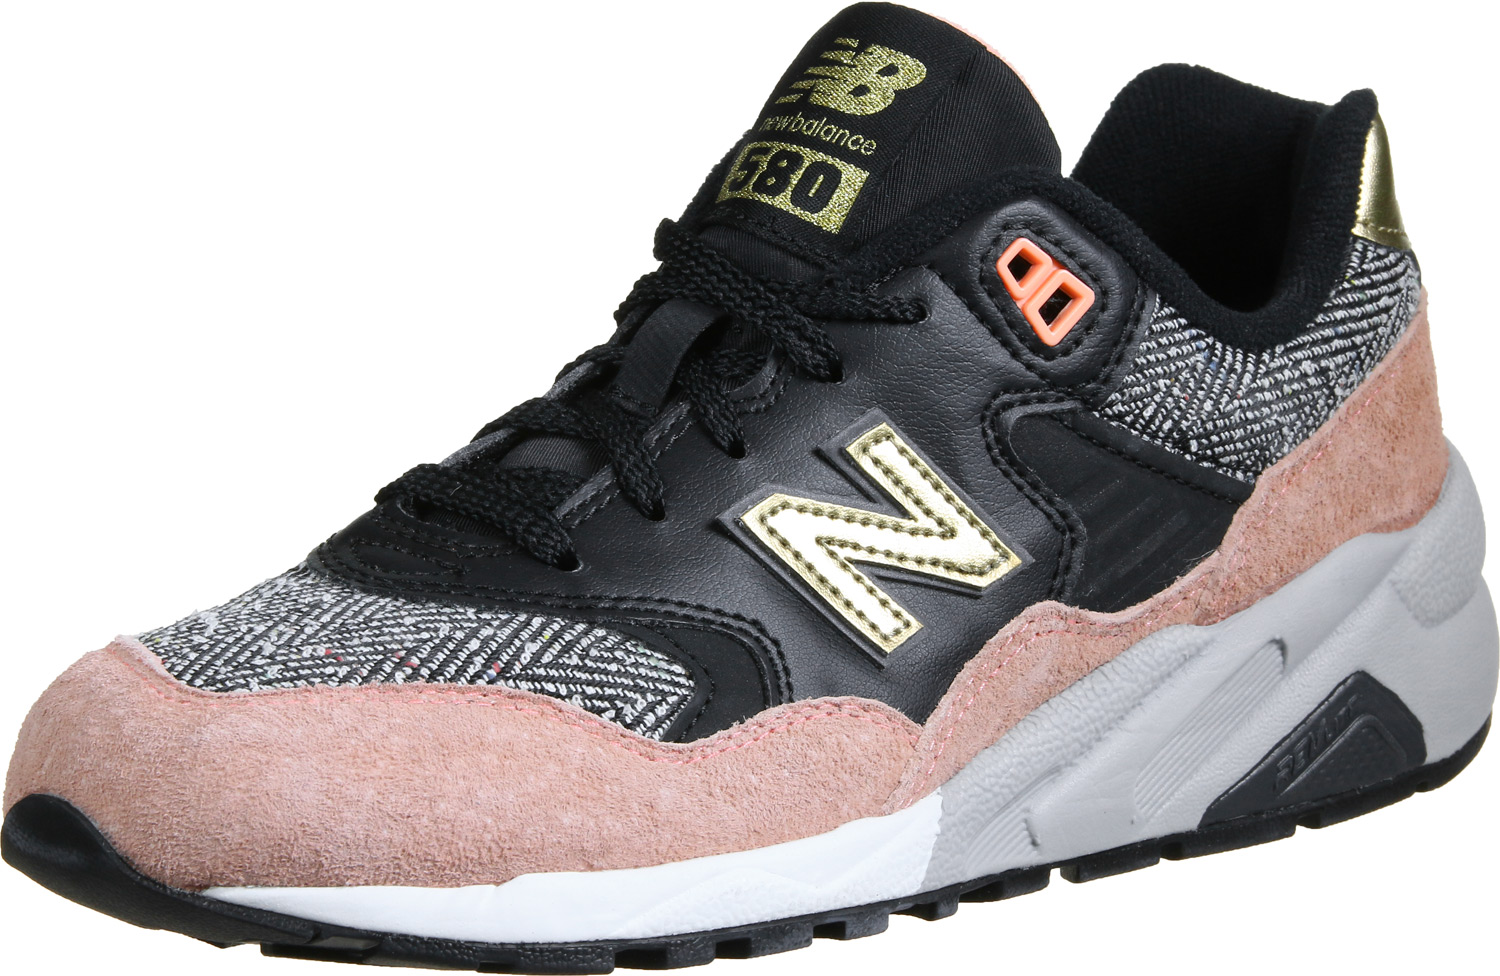 ab2c7f5890c4 new balance femme stylefile, 16%NewSoonYouth New Balance WRT580 W  chaussures rose noir